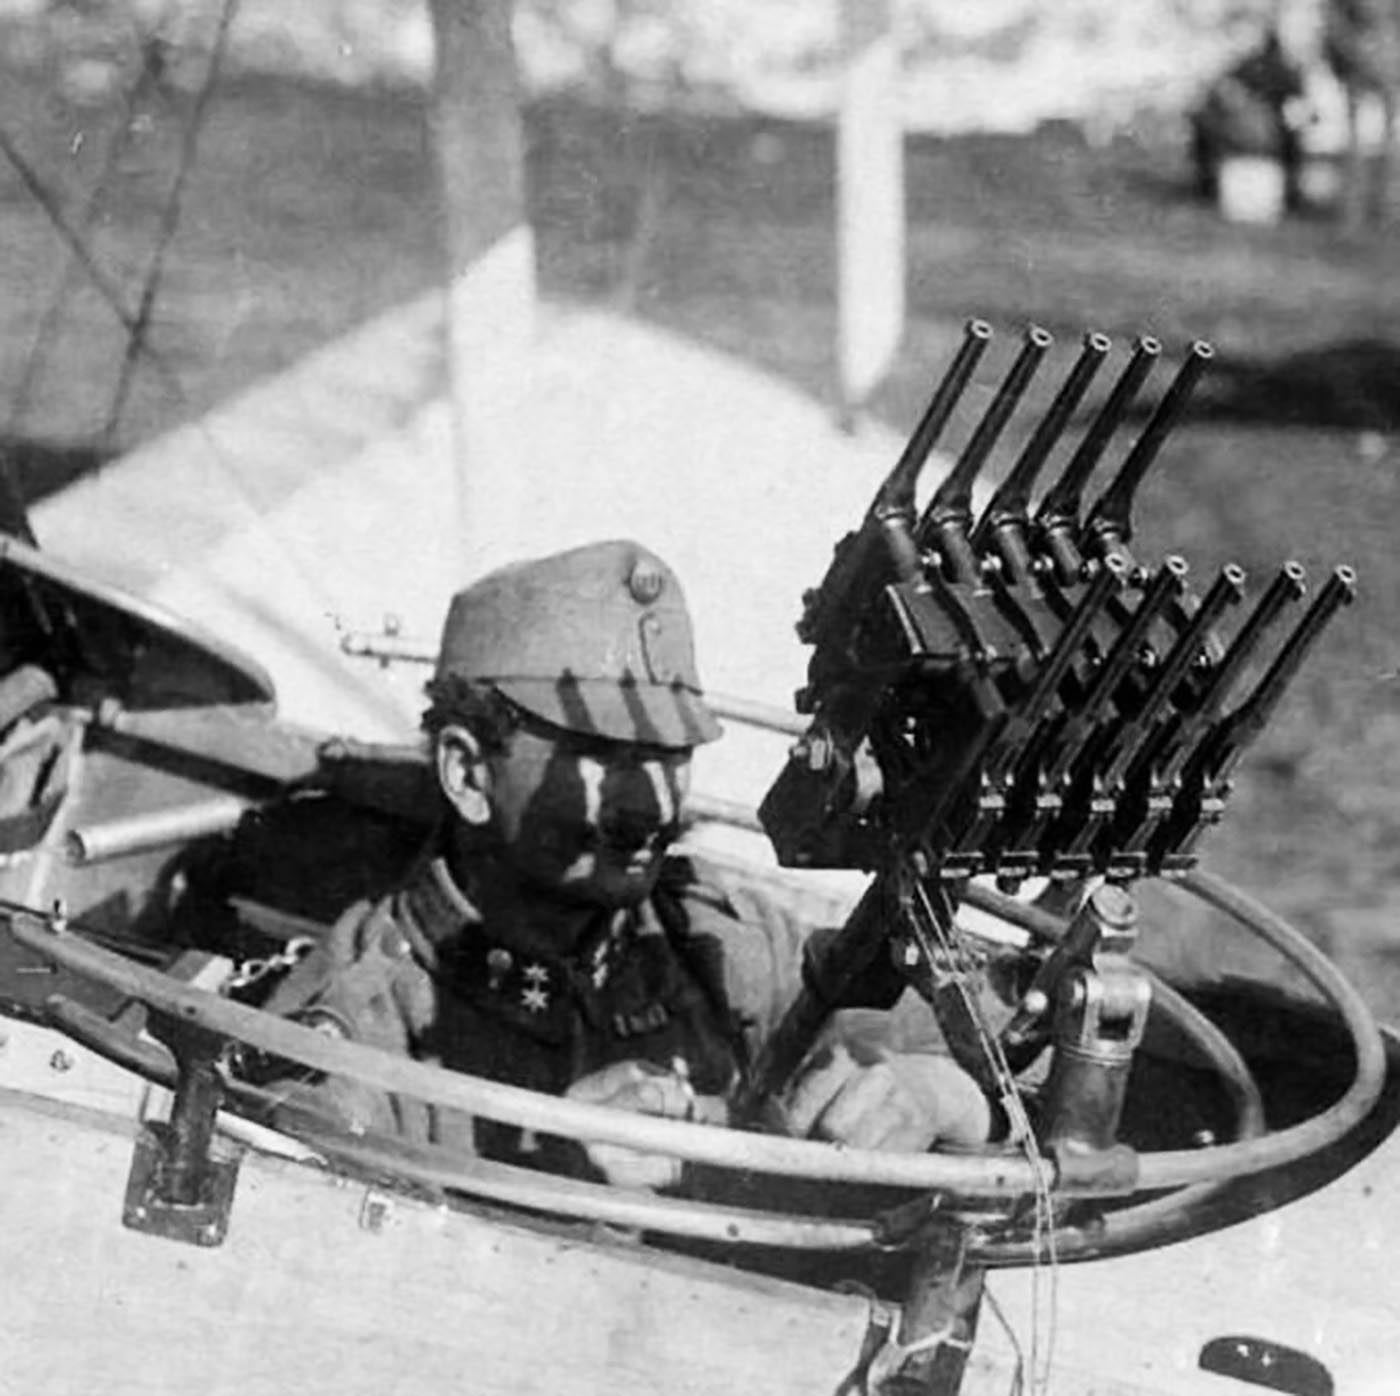 Ten Mauser C96 pistols arranged to defend an Austro-Hungarian reconnaissance aircraft, 1917.